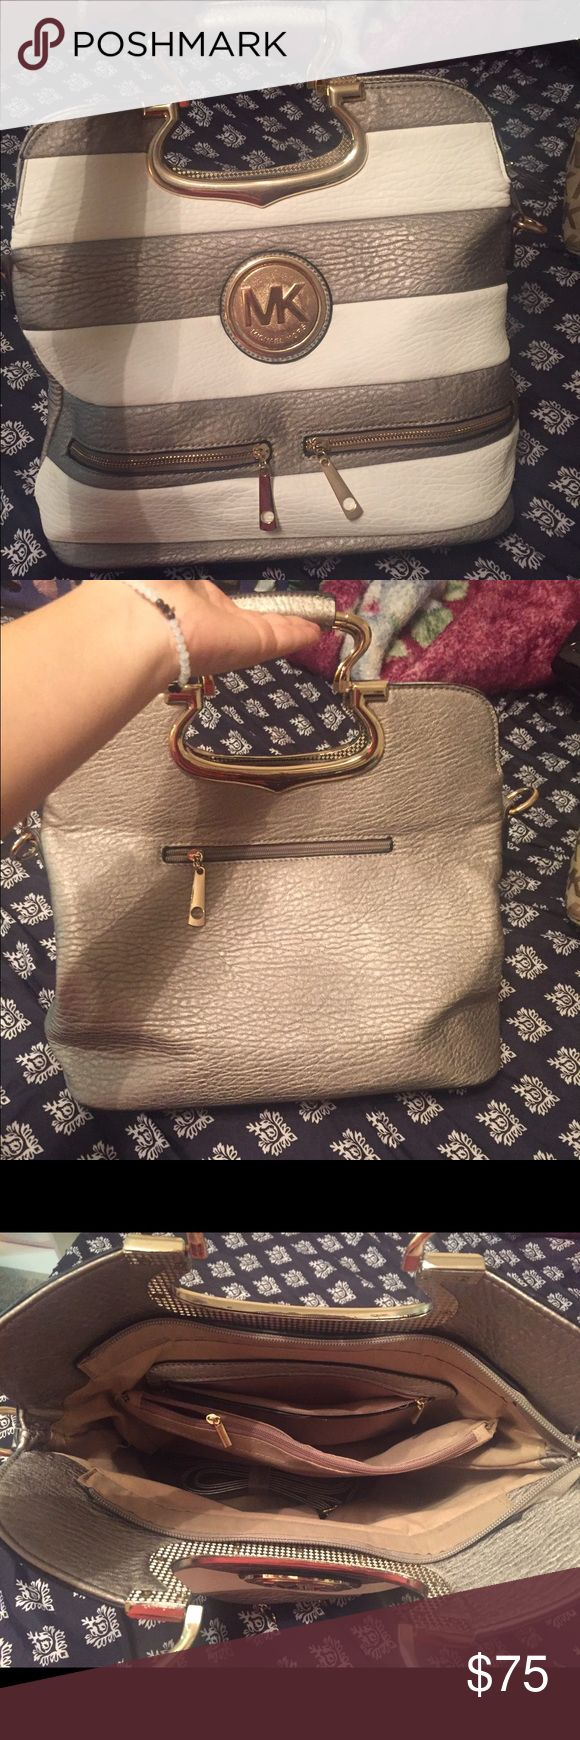 Mk bag price reflects authenticity 💕 Pre loved mk bag comes with add on straps let me know if you need any more pictures :) ty Michael Kors Bags Totes